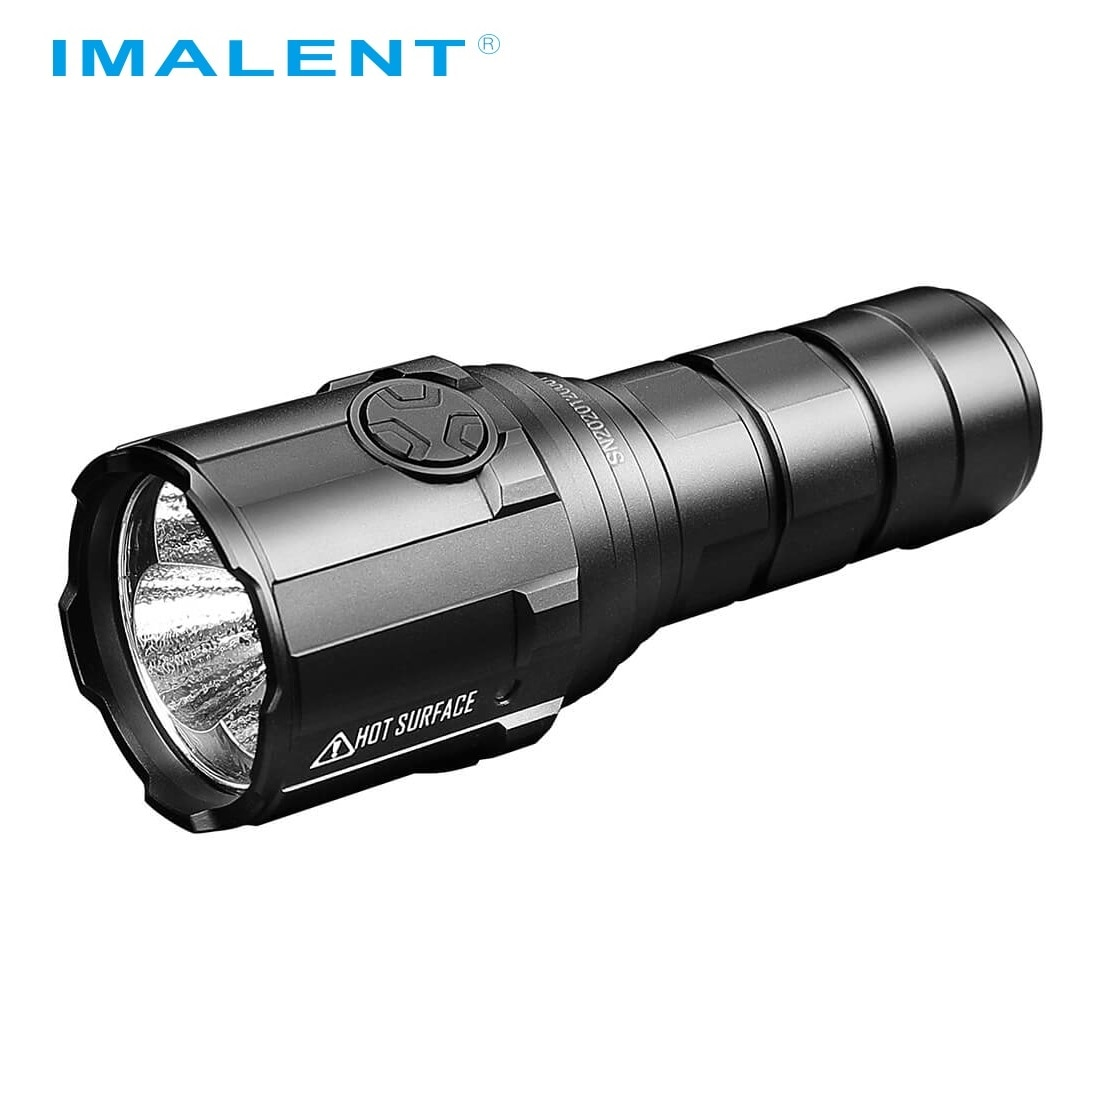 IMALENT R30C EDC LED Flashlight 9000 Lumens Type-C USB Rechargeable Flashlight by 21700 Battery for Hunting, Search and Rescue